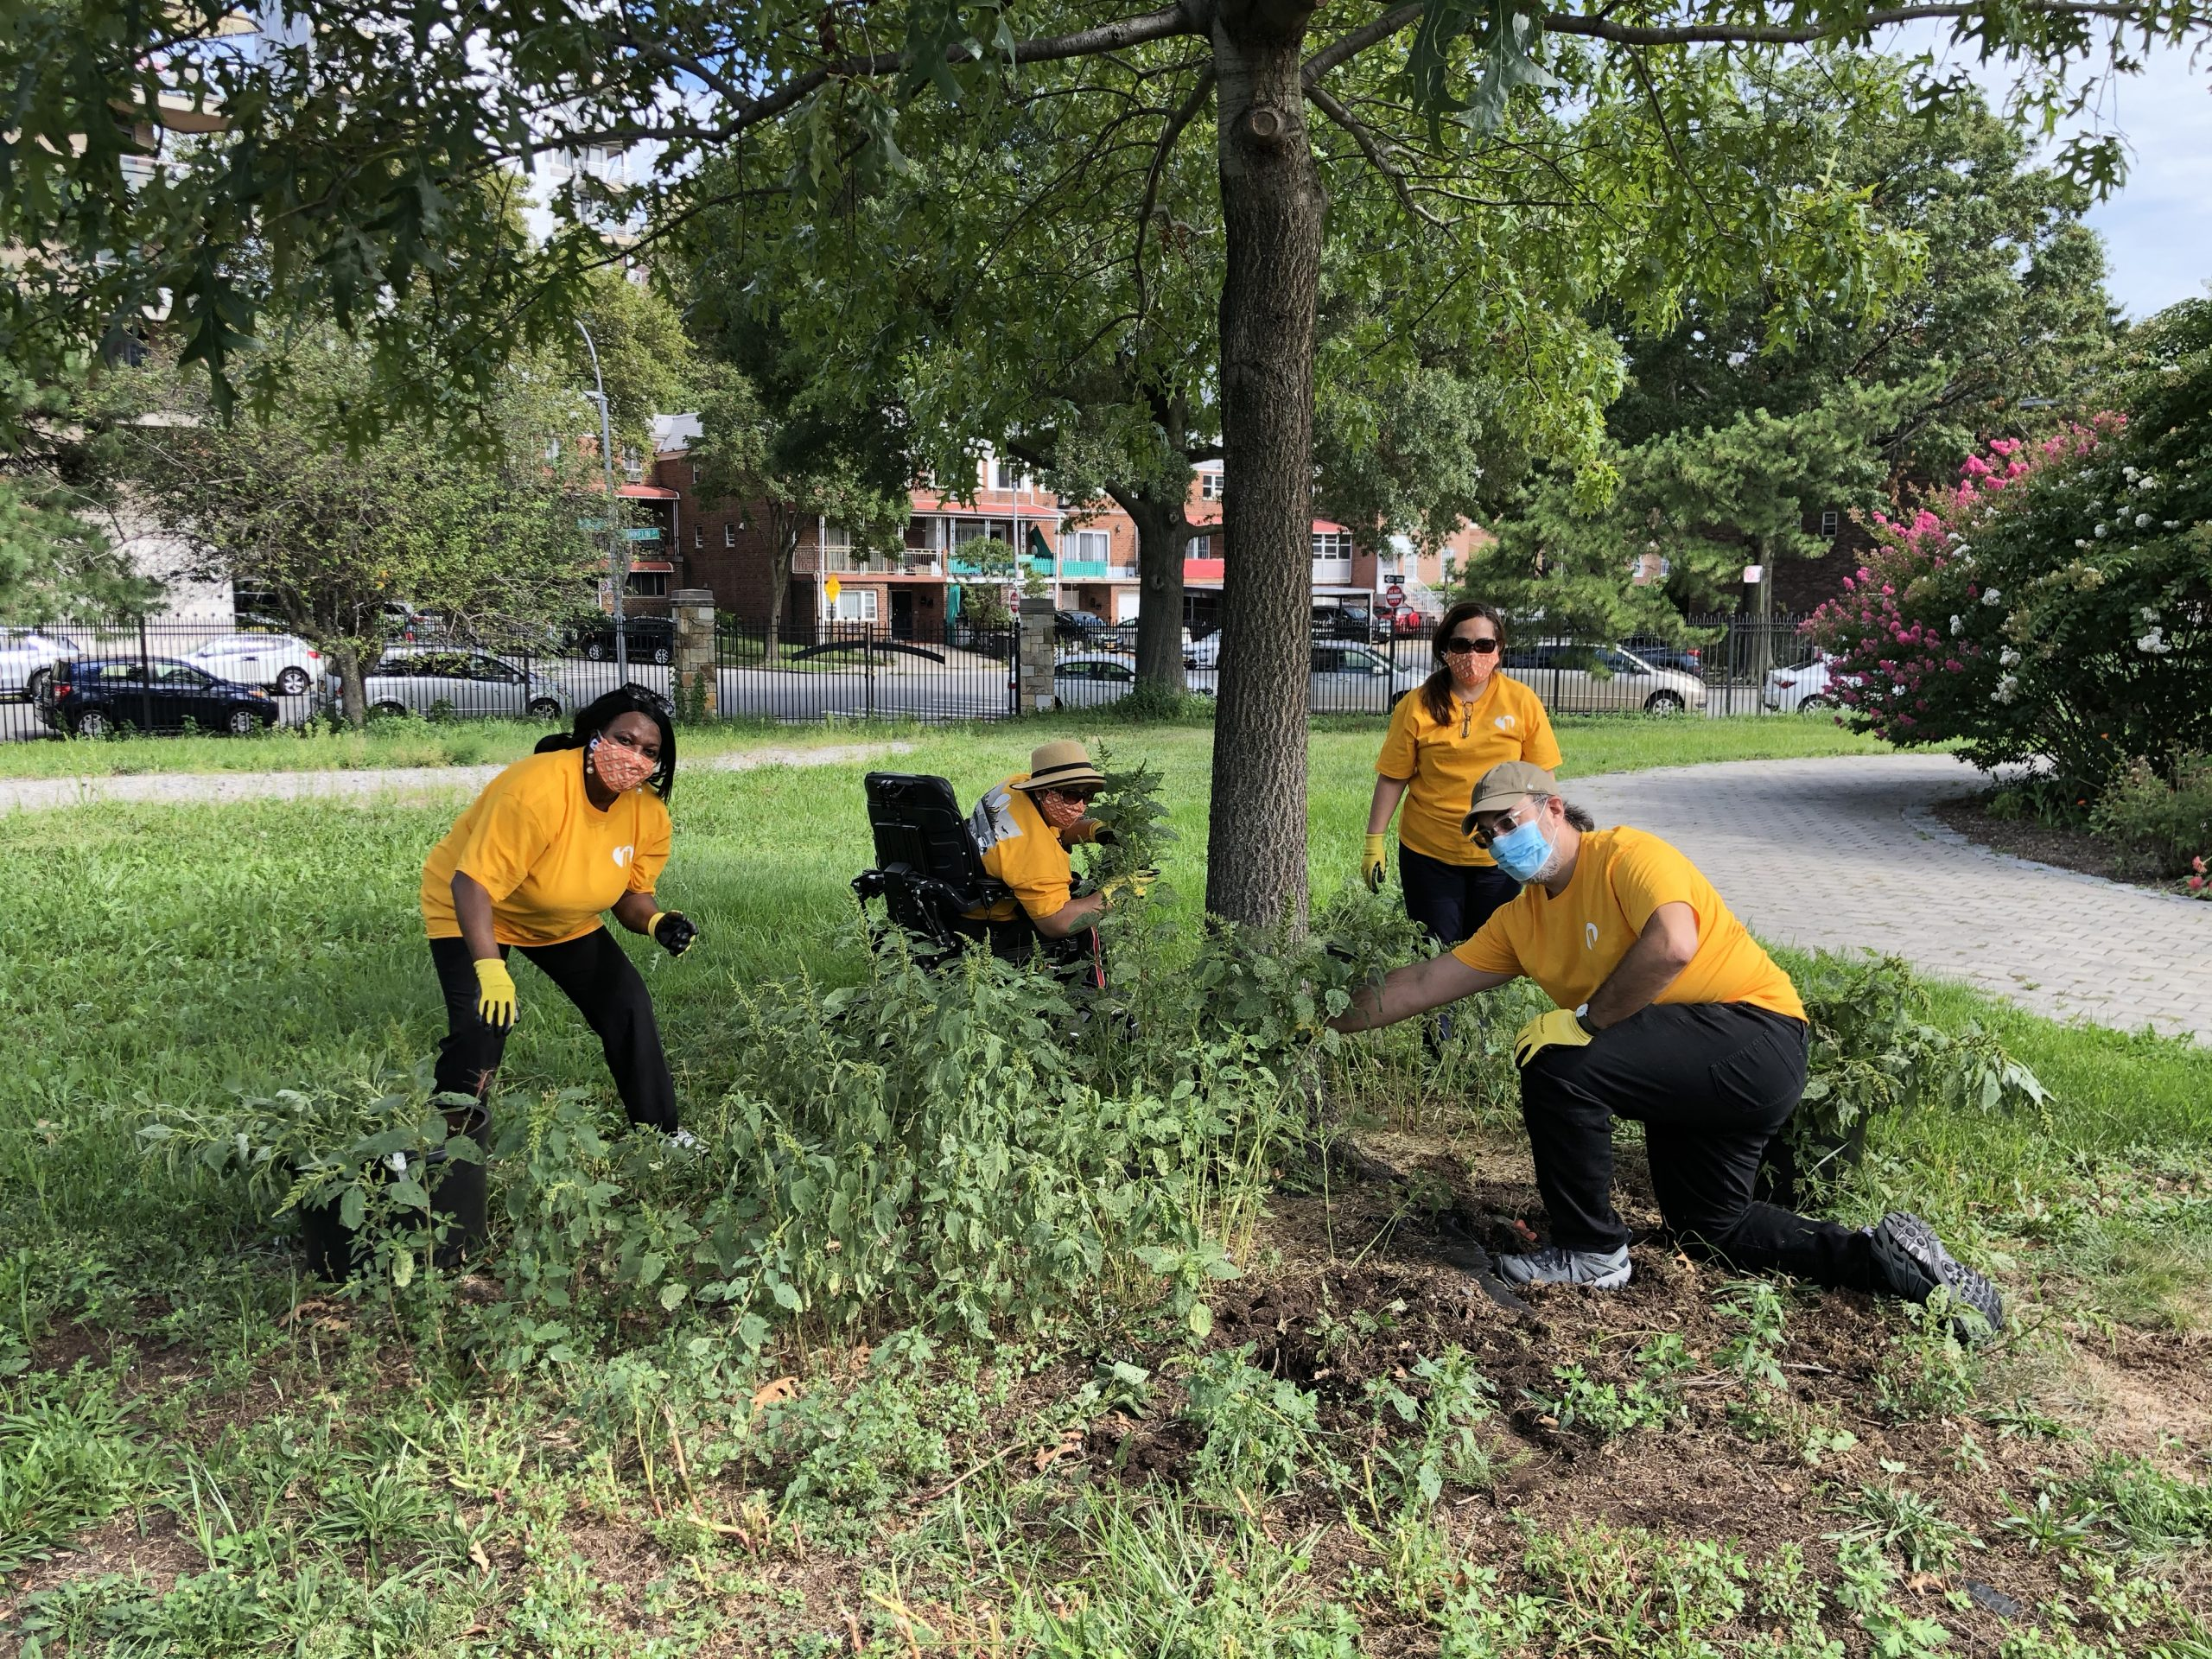 Port Authority Volunteers outside surrounding a tree wearing masks, wearing yellow shirts